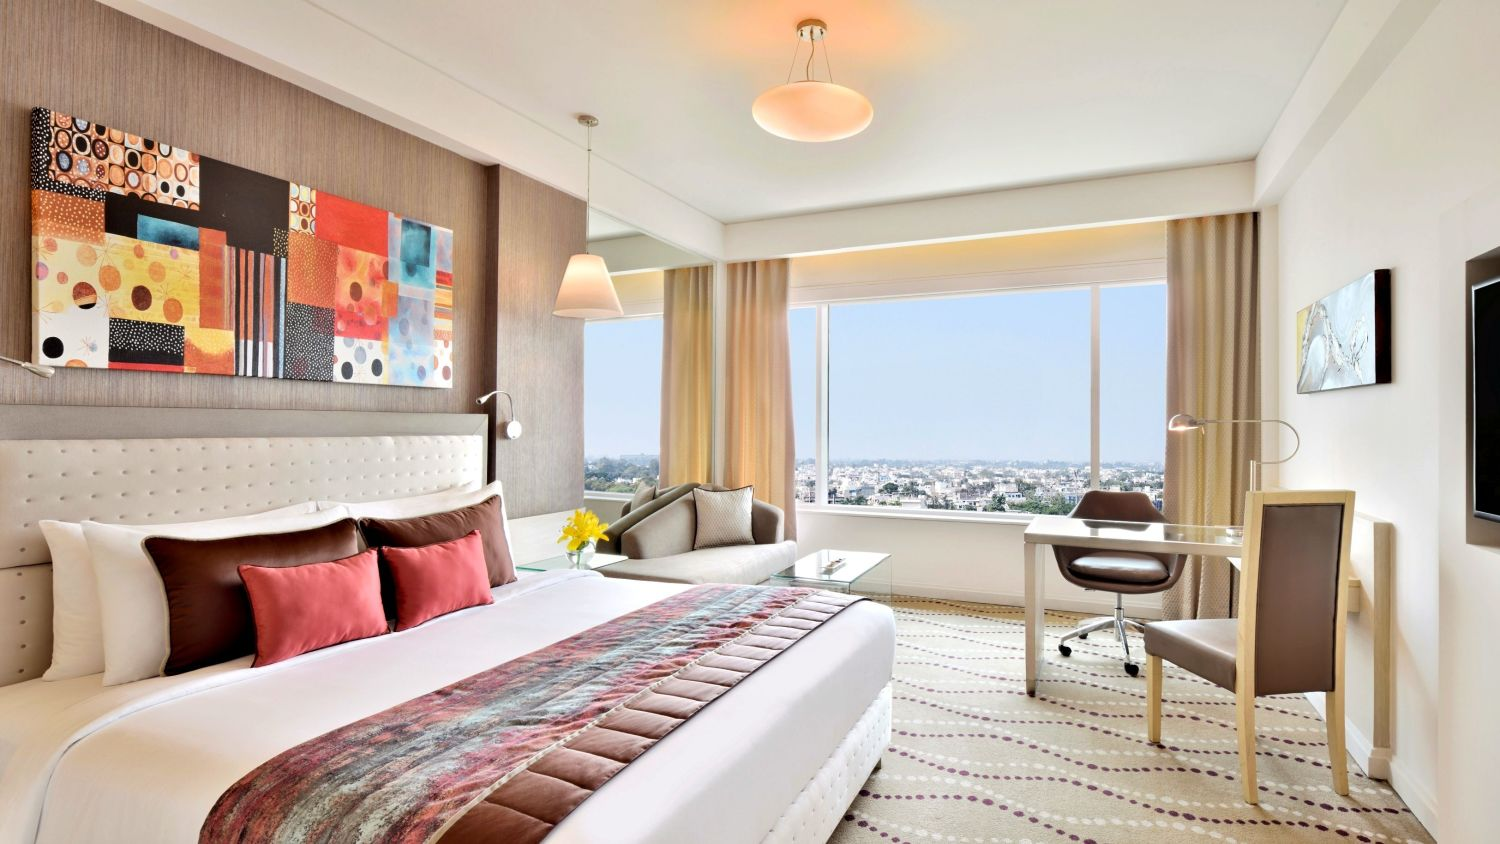 Executive Club King Size Bed Rooms at Radisson Blu - Bengaluru Outer Ring Road 4